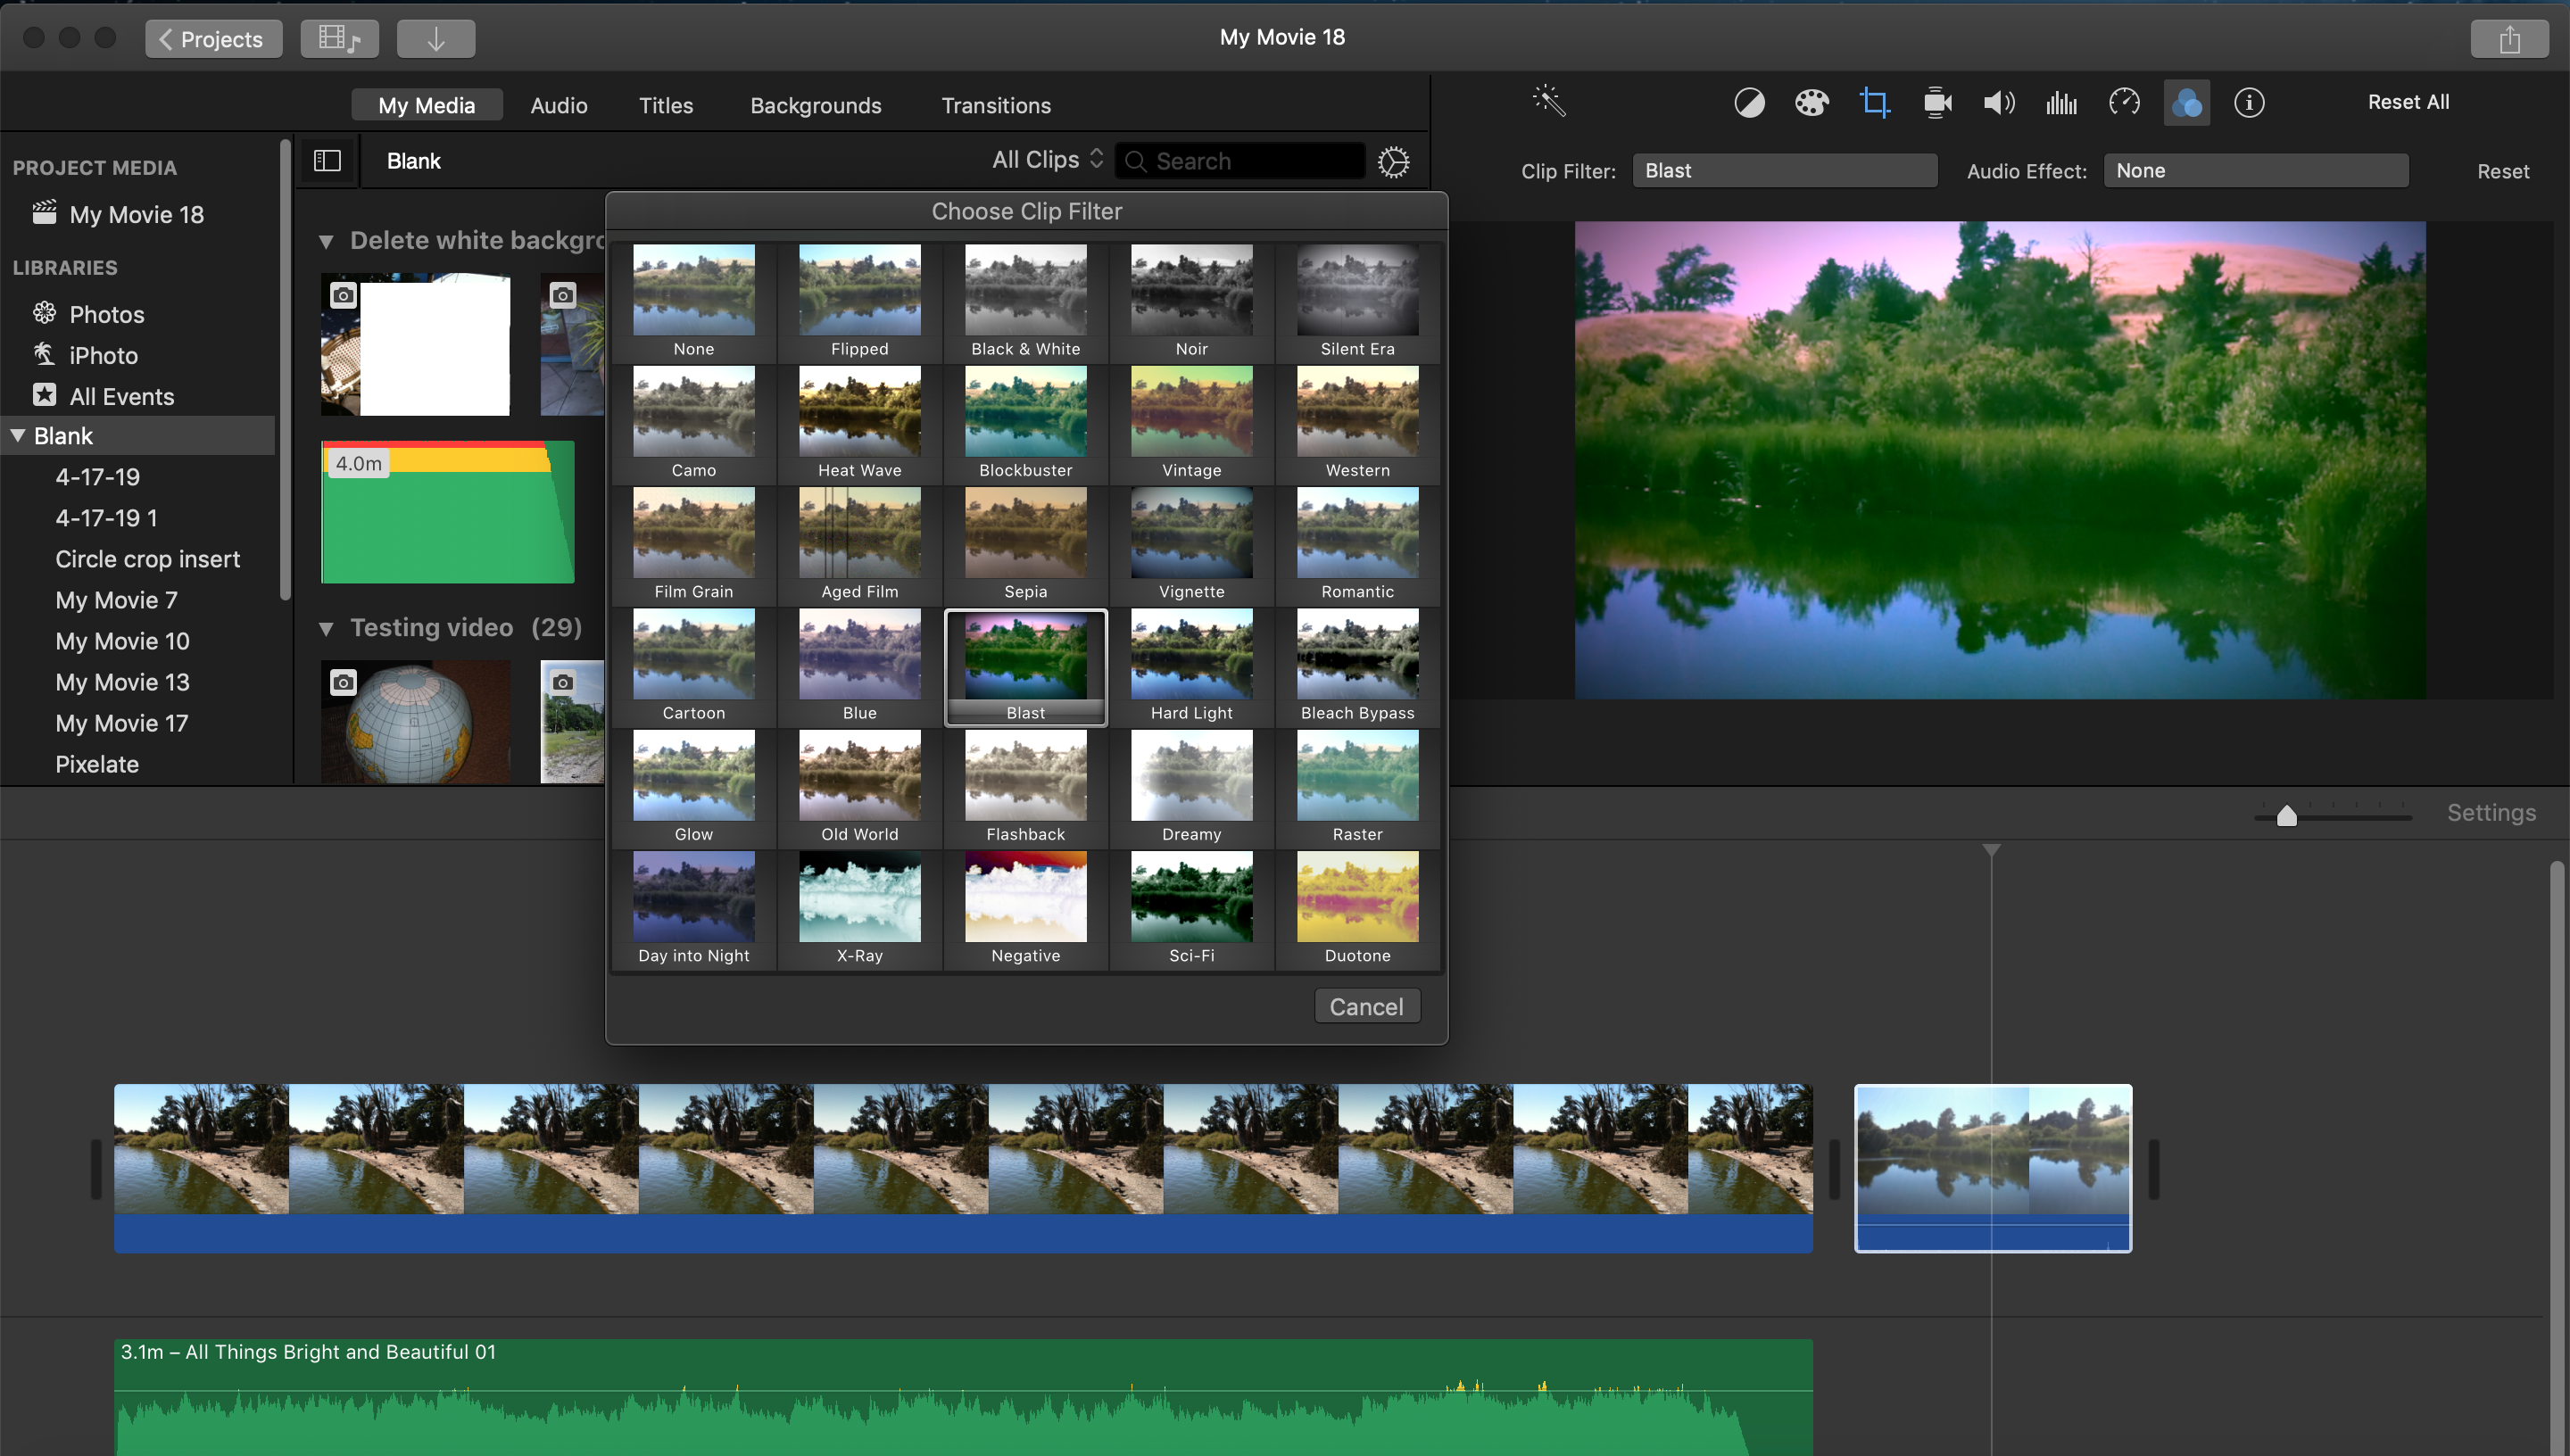 iMovie effects not working on jpeg images? - Apple Community